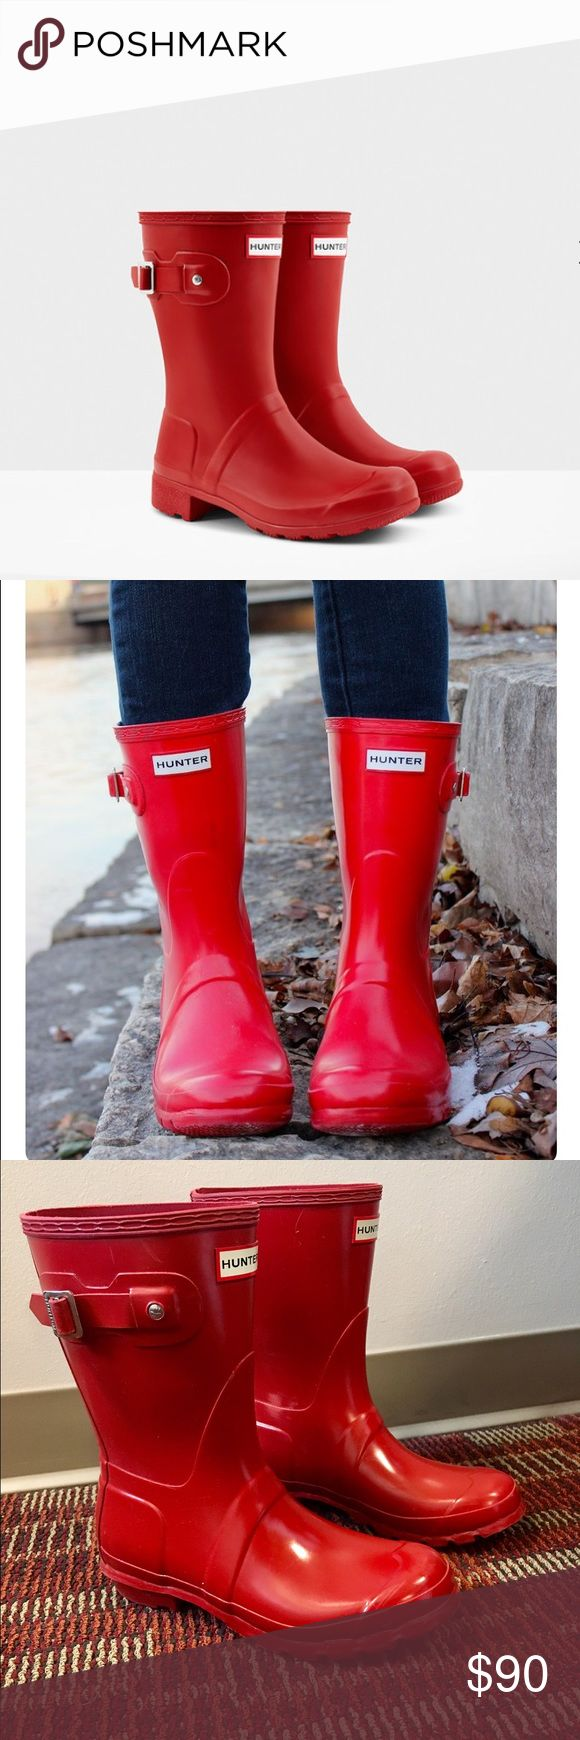 Women's Original Short Hunter Rainboots Size 7 women's Original Tour short Hunter rain boots in red! Perfect condition, barely worn. So cute for fall & winter weather. Hunter Boots Shoes Winter & Rain Boots